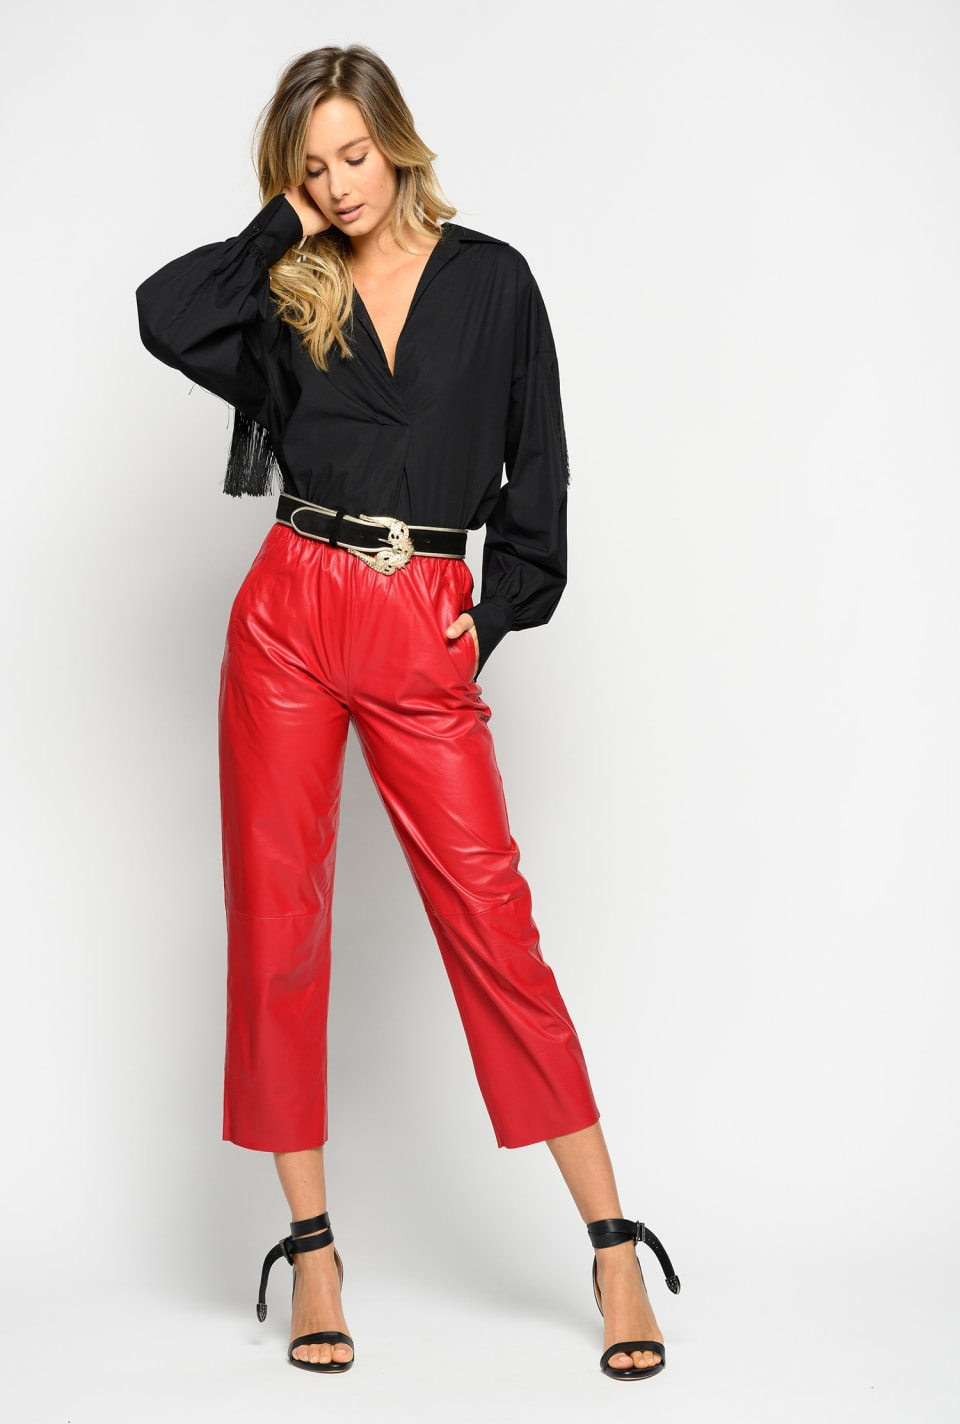 Ultralight leather trousers